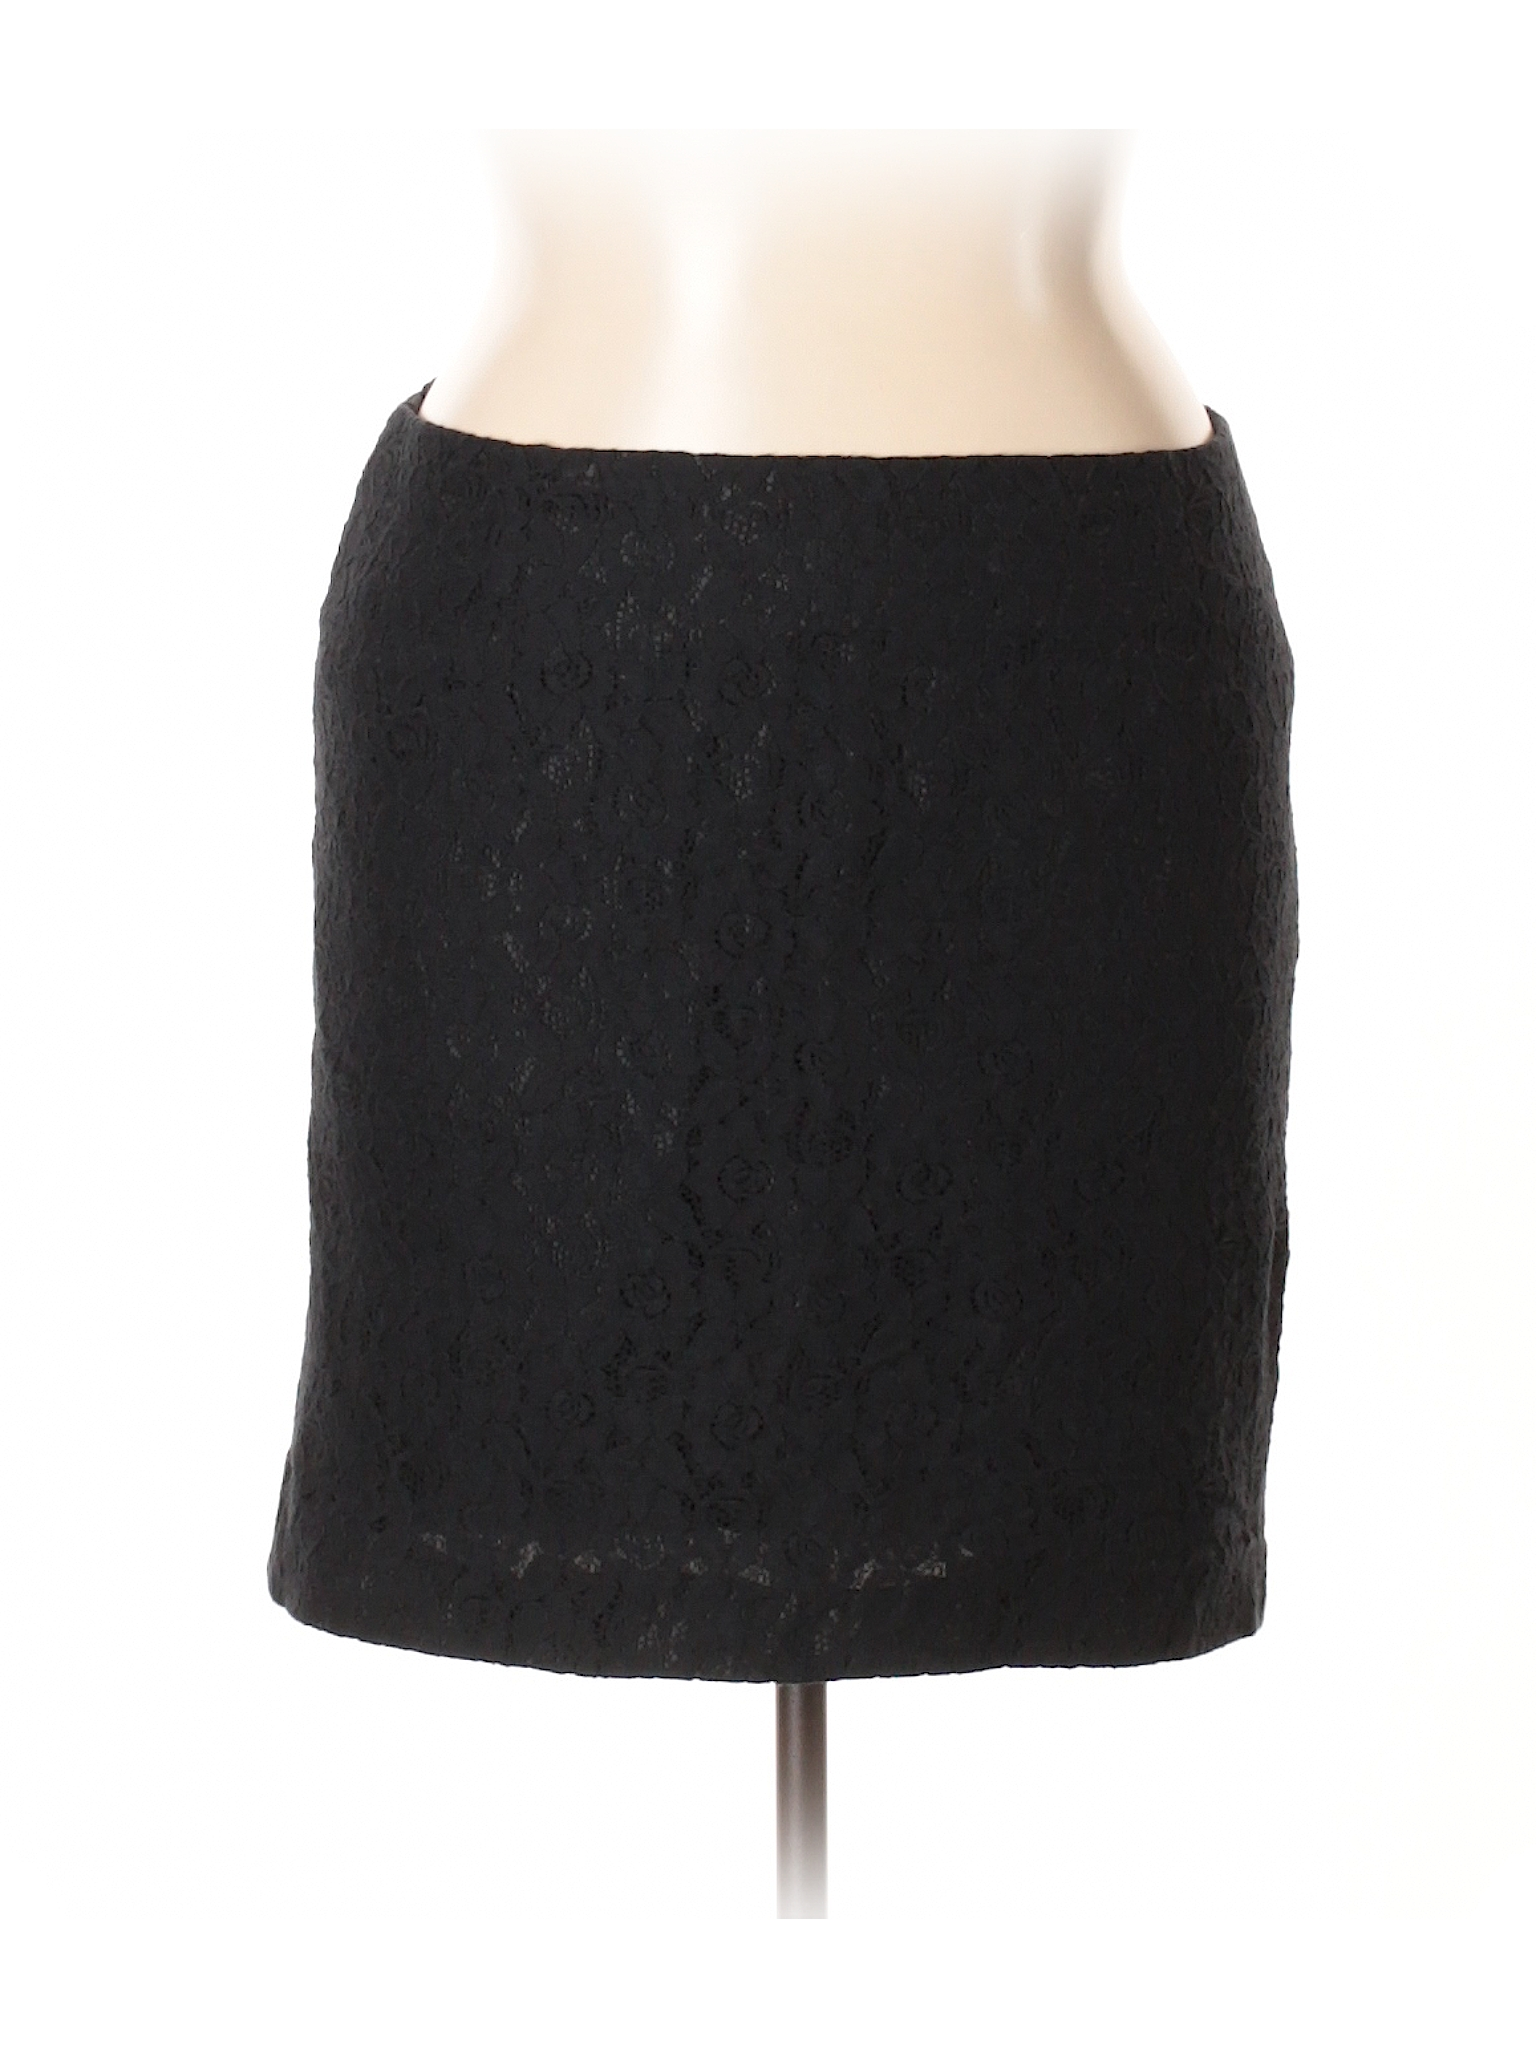 Jessica Casual Skirt Size 1600 Black Womens Bottoms  $899